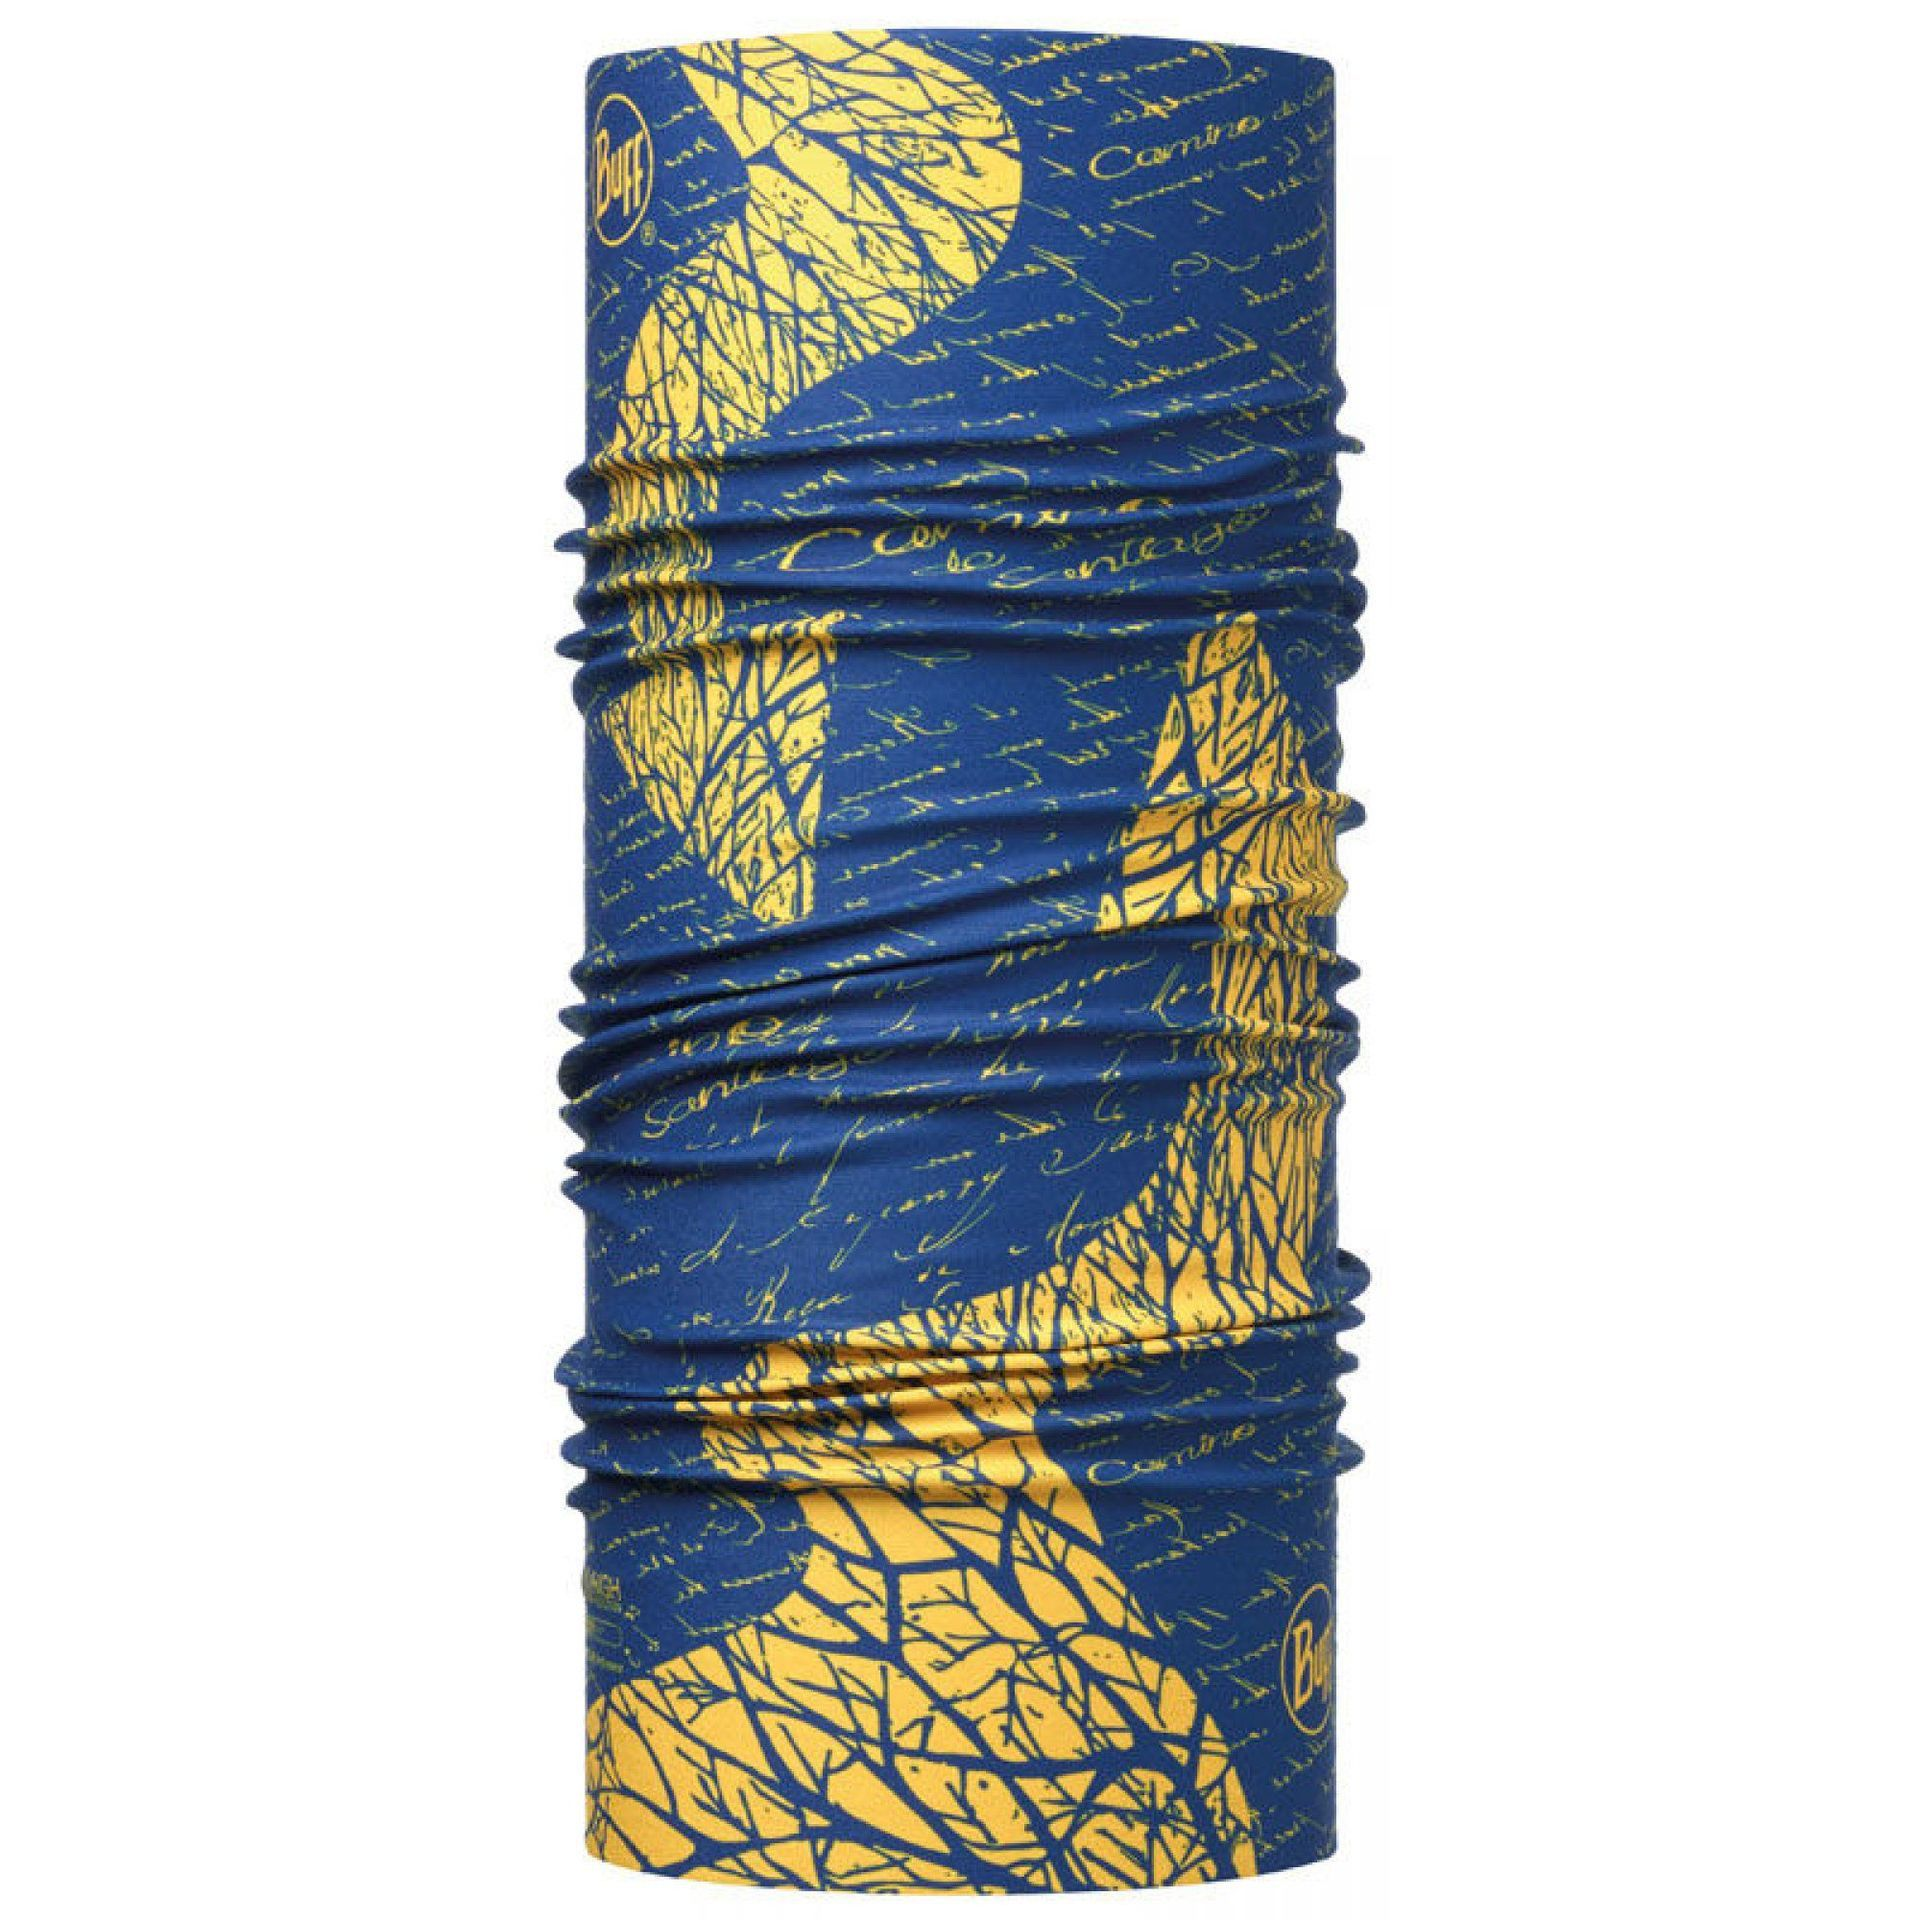 CHUSTA BUFF HIGH UV PROTECTION CAMINO DE SANTIAGO SIGNAL ROYAL BLUE